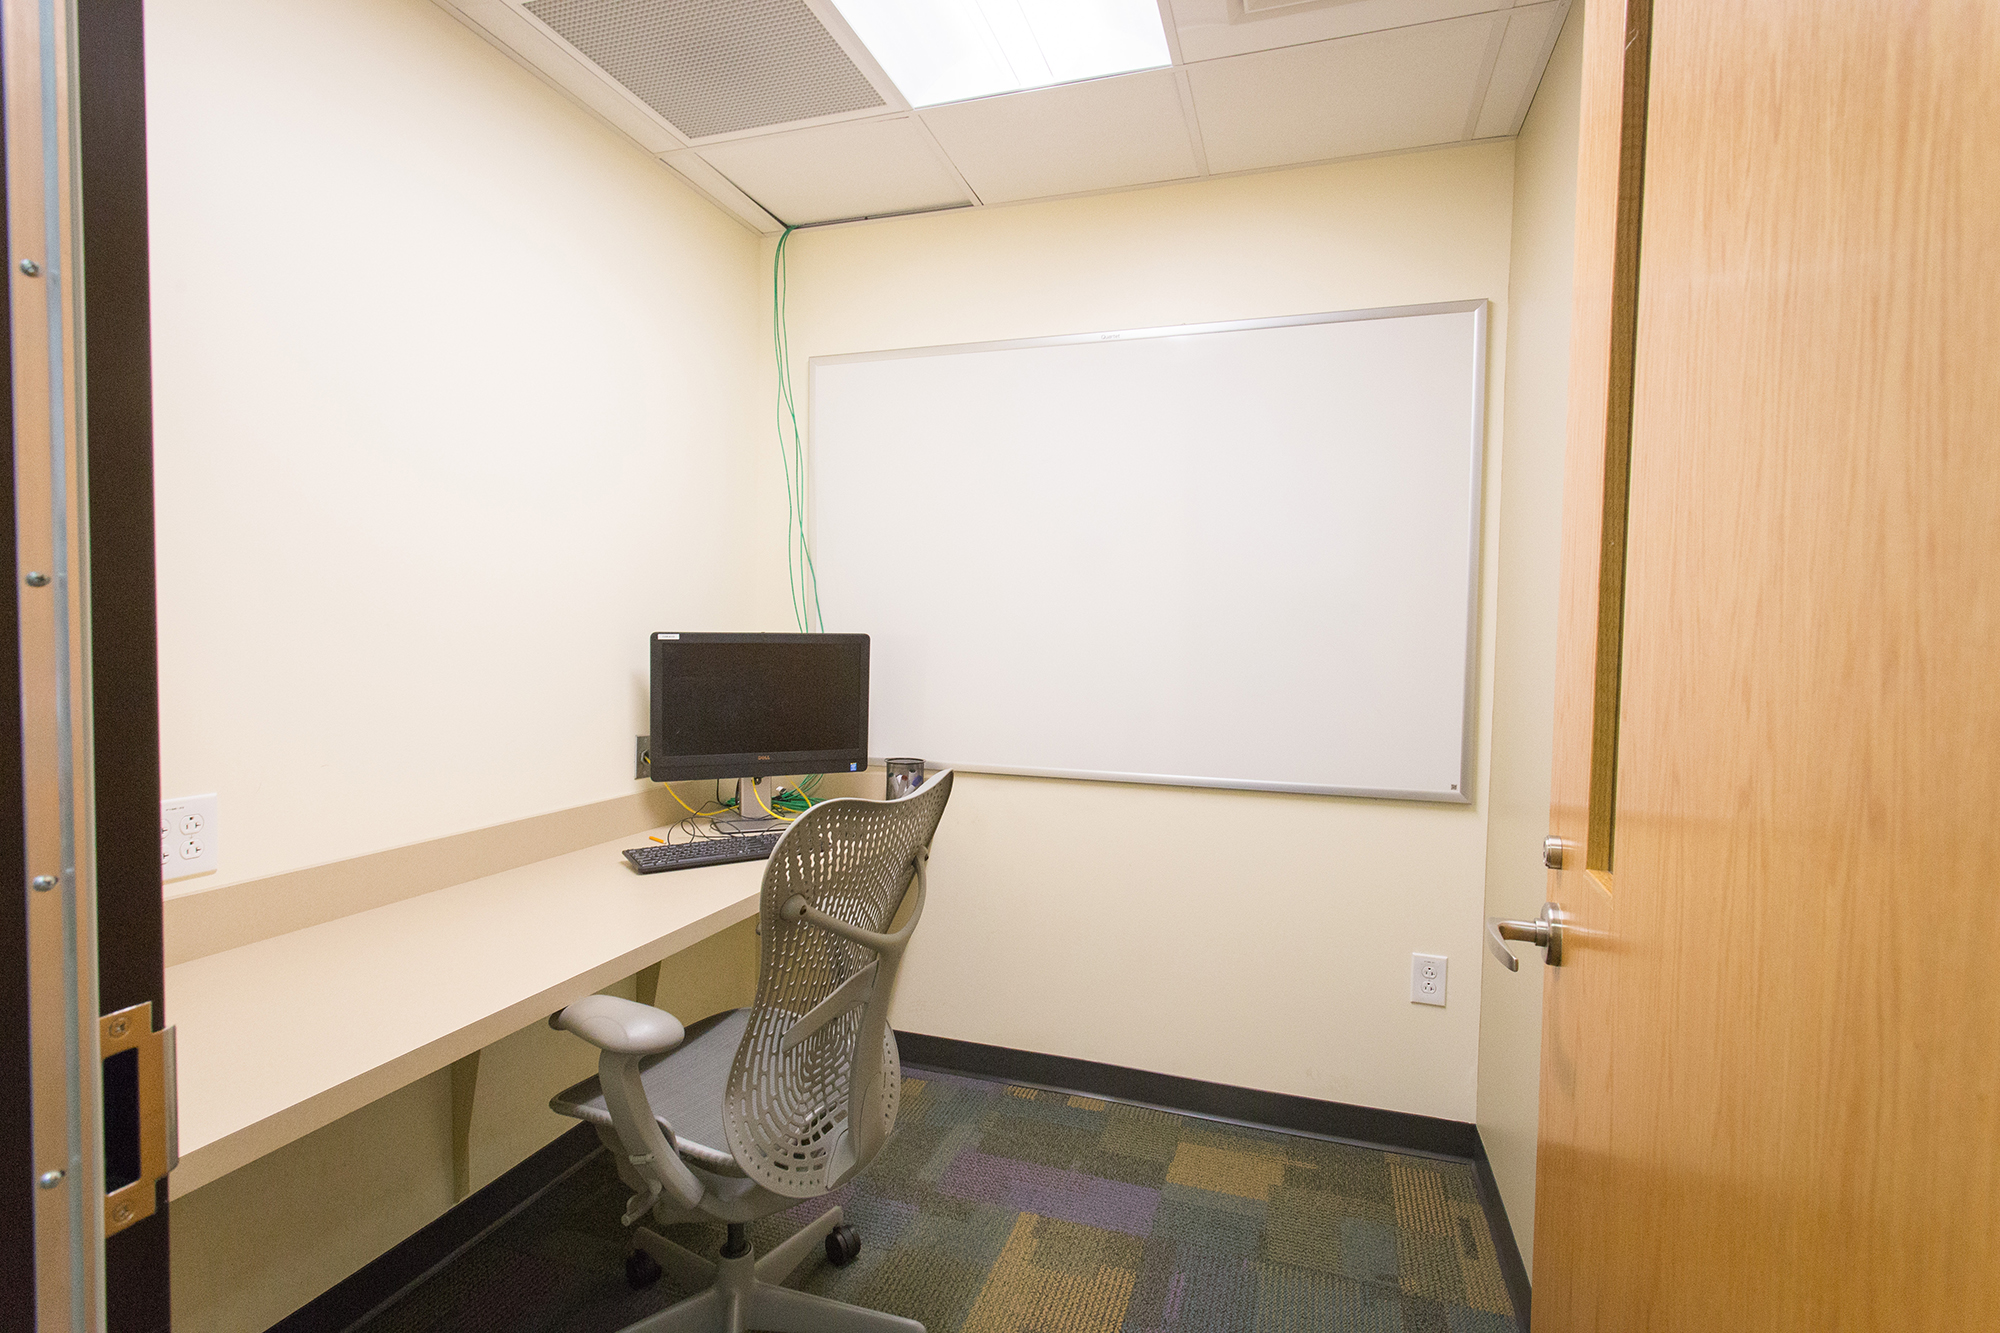 Individual quiet study room at the Veterinary Medicine Library at NC State